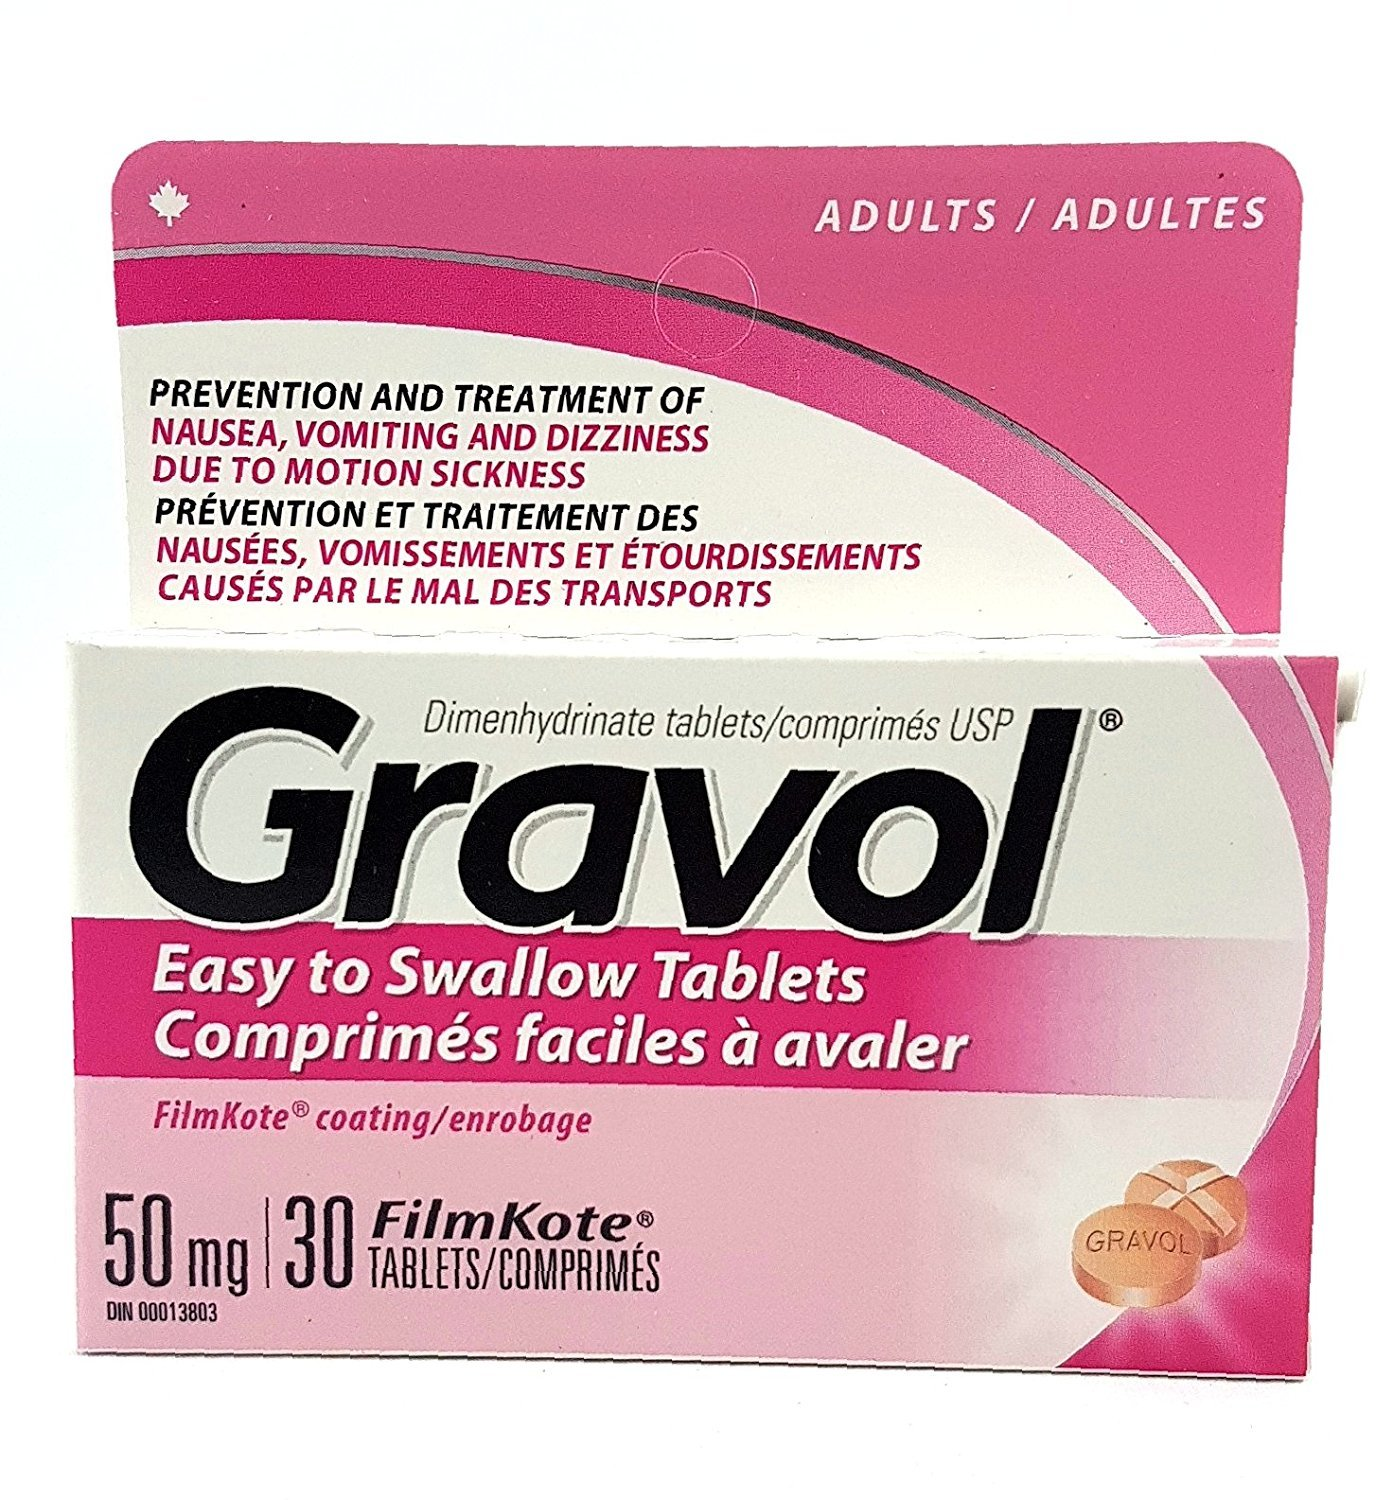 Easy to Swallow GRAVOL (30 tablets) Antinauseant for NAUSEA, VOMITING, DIZZINESS & MOTION SICKNESS by Gravol